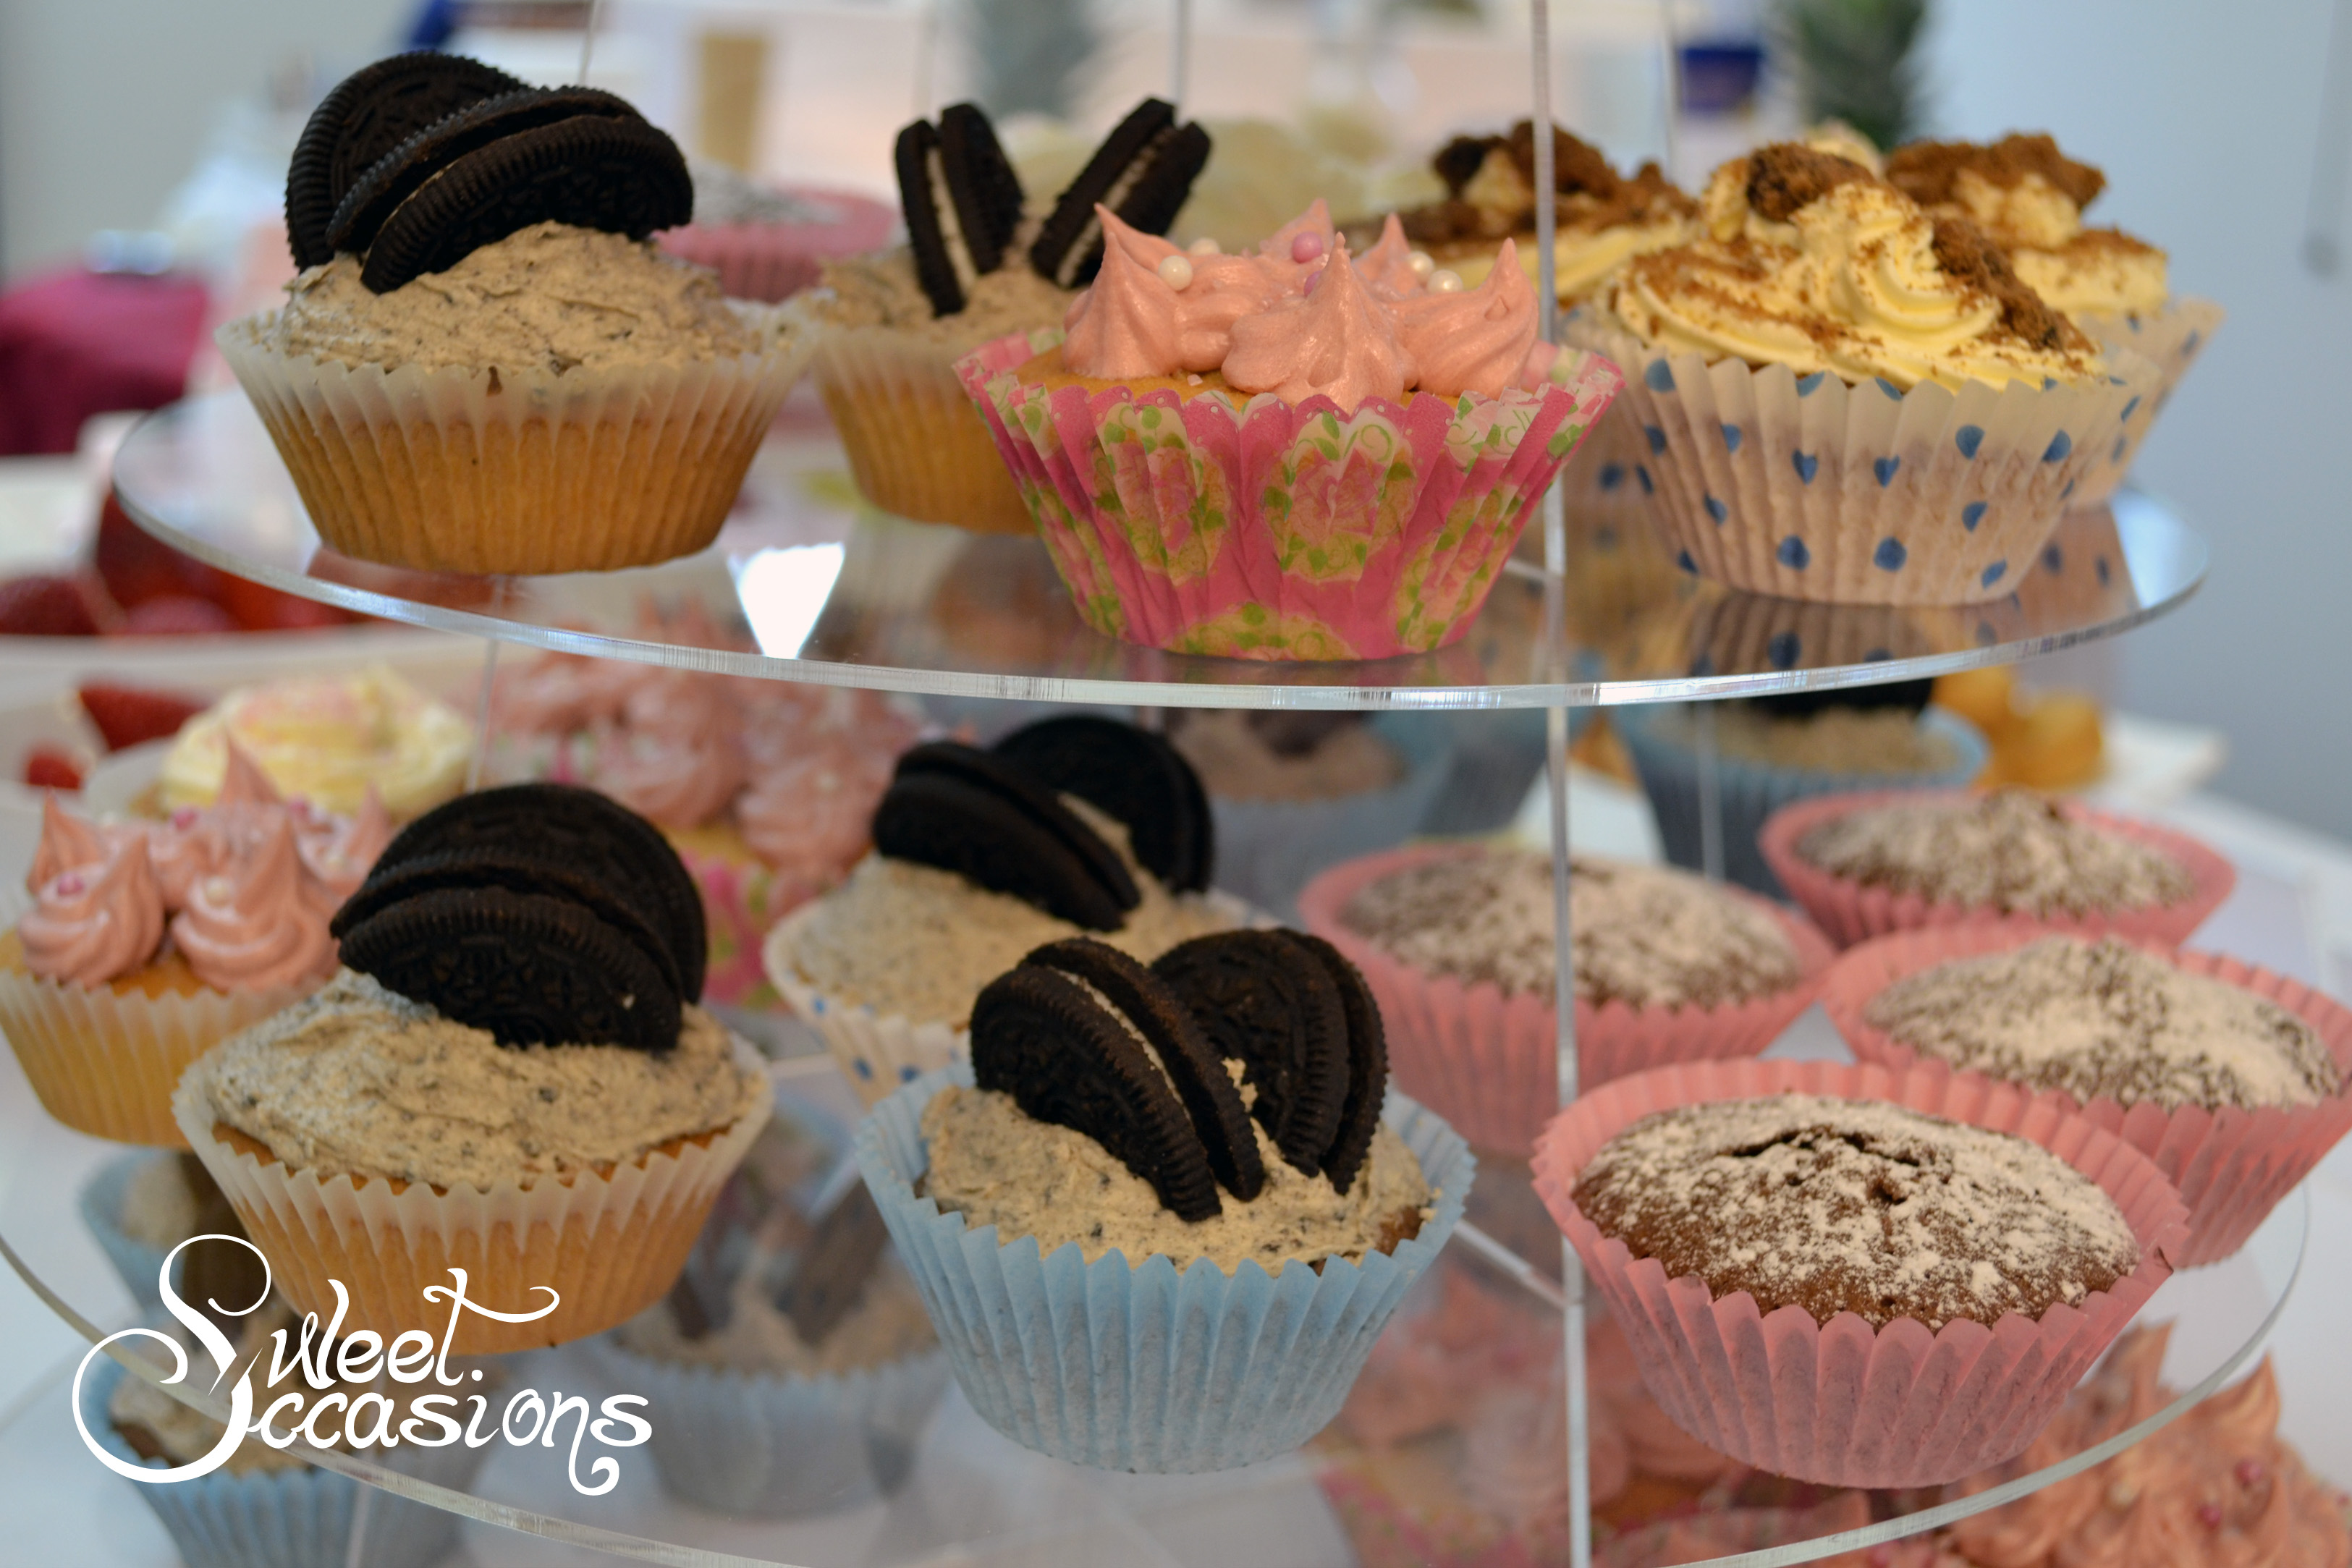 sweet occasions cupcake 4